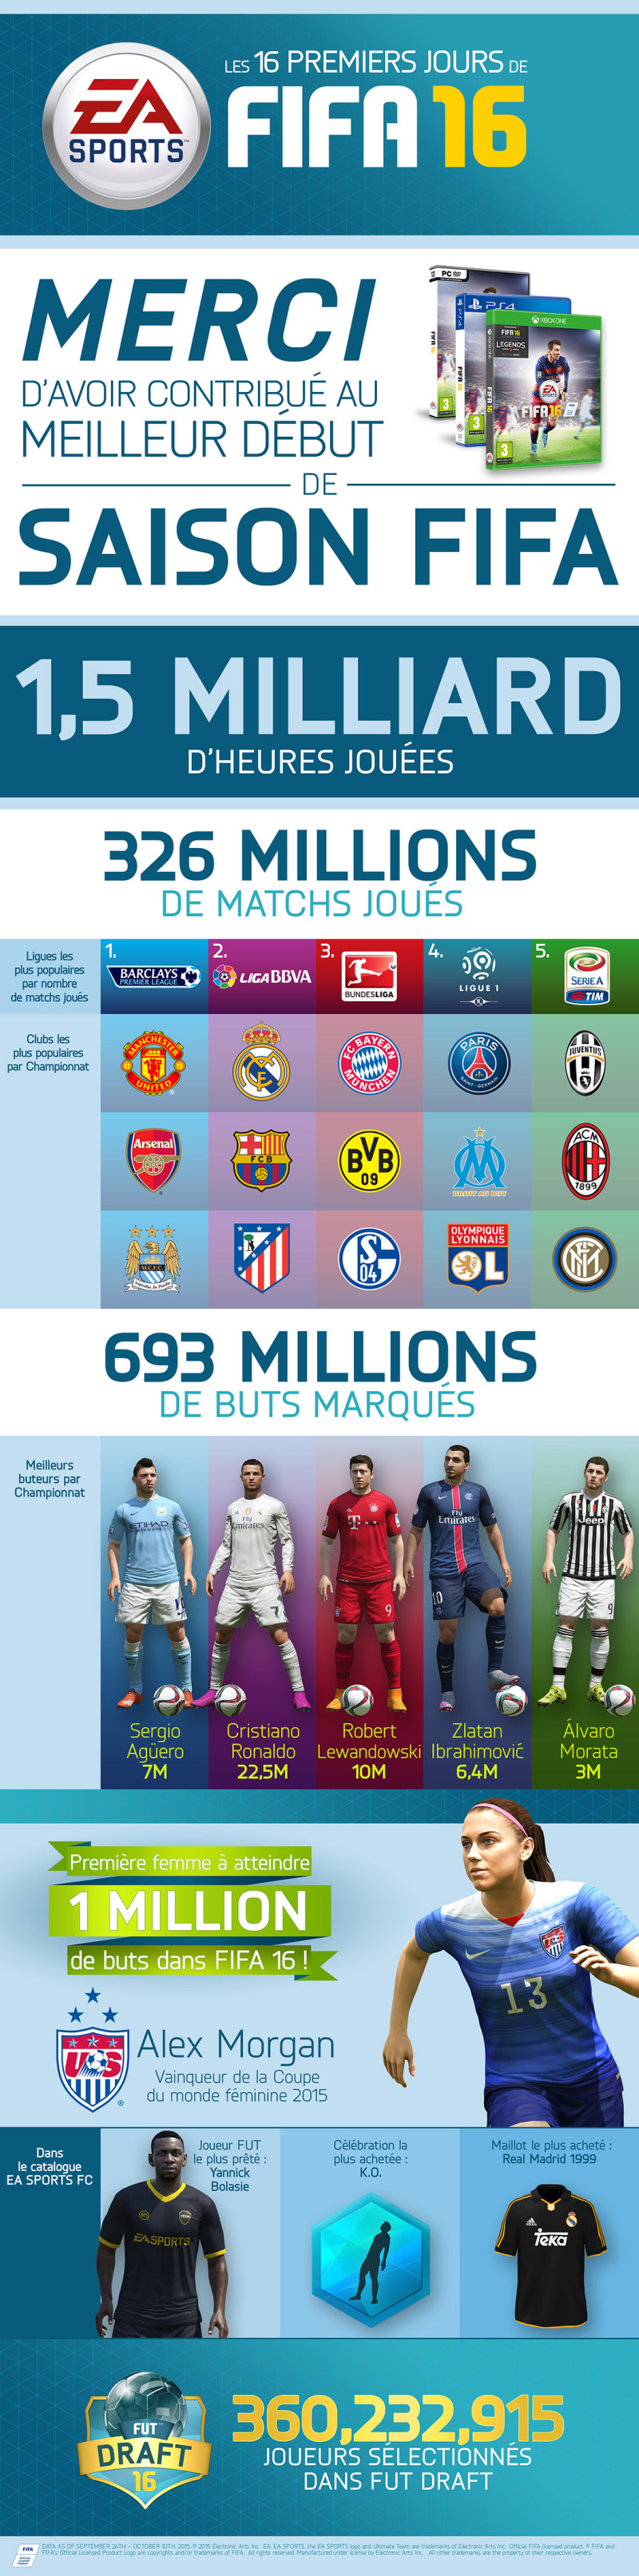 fifa 16 infographie